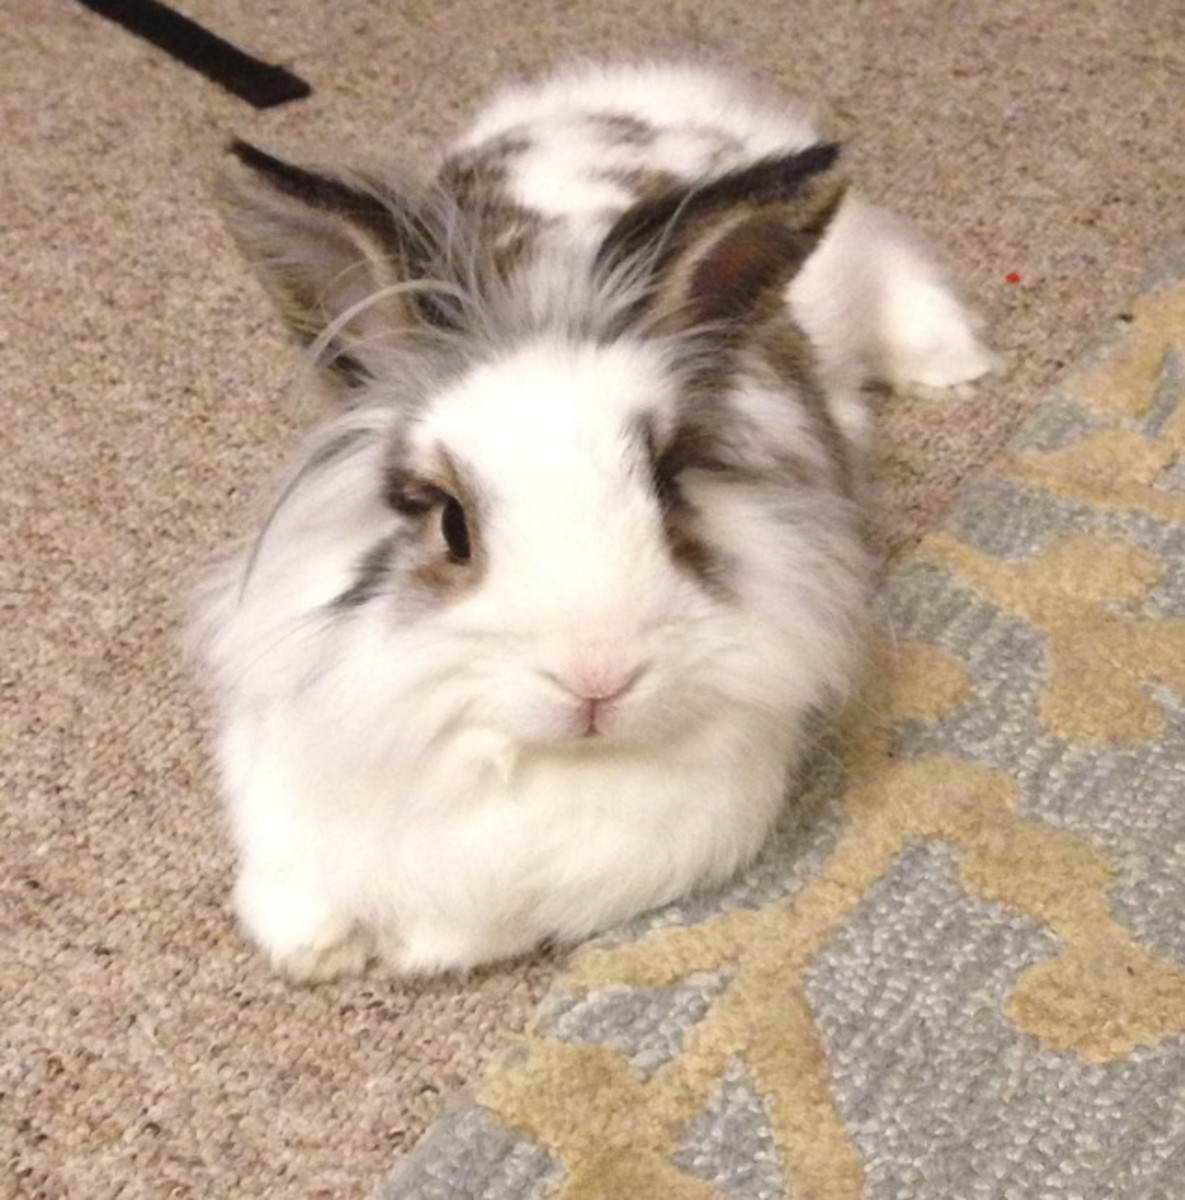 Lionhead Bunny (Courtesy of Caffeinegeek)